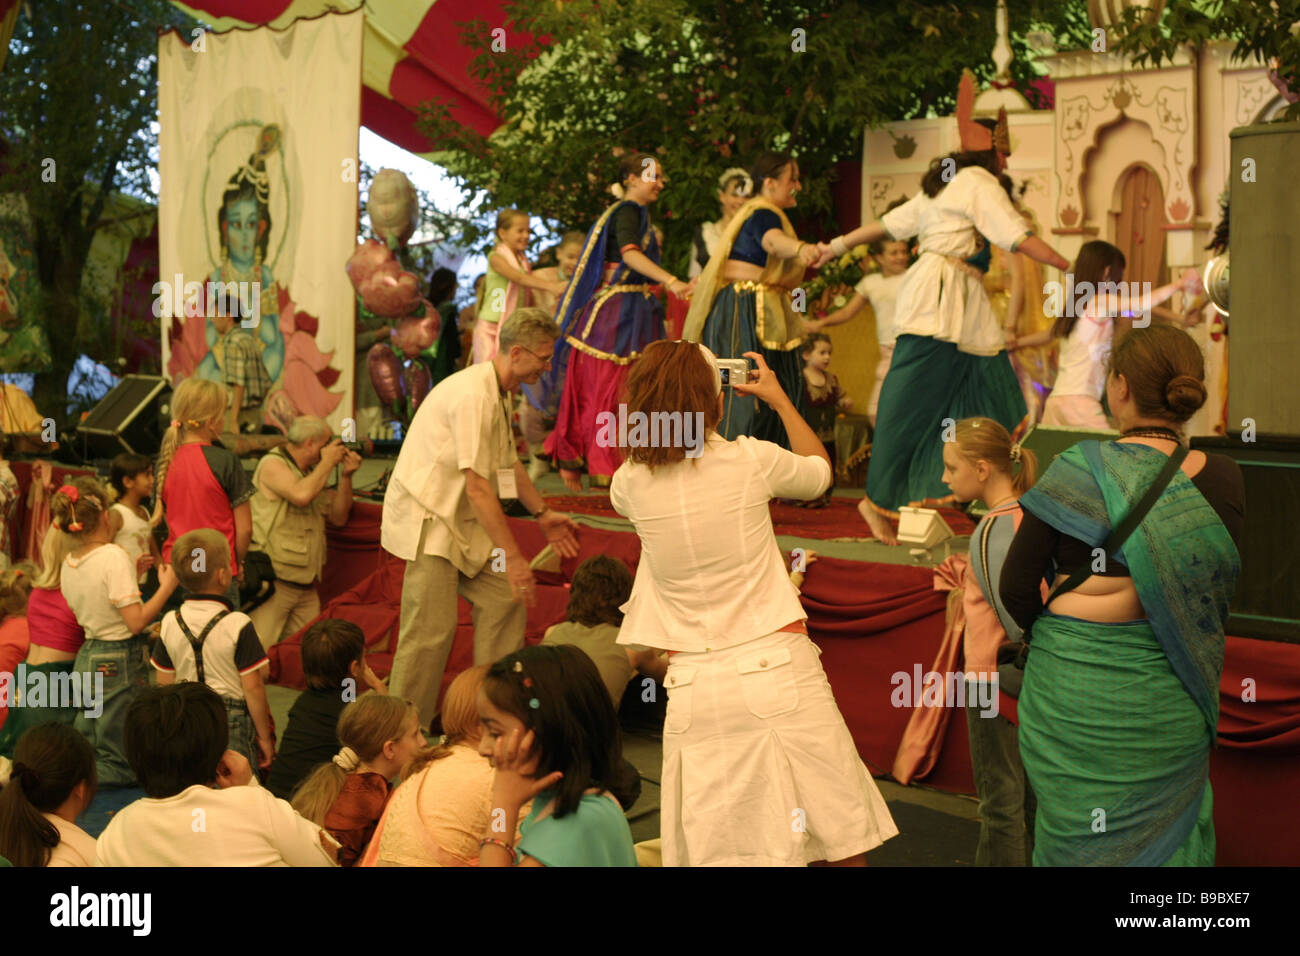 The St Petersburg Little Theater performs Madhutra based on the Mahabharata staged during Days of Indian Spiritual - Stock Image